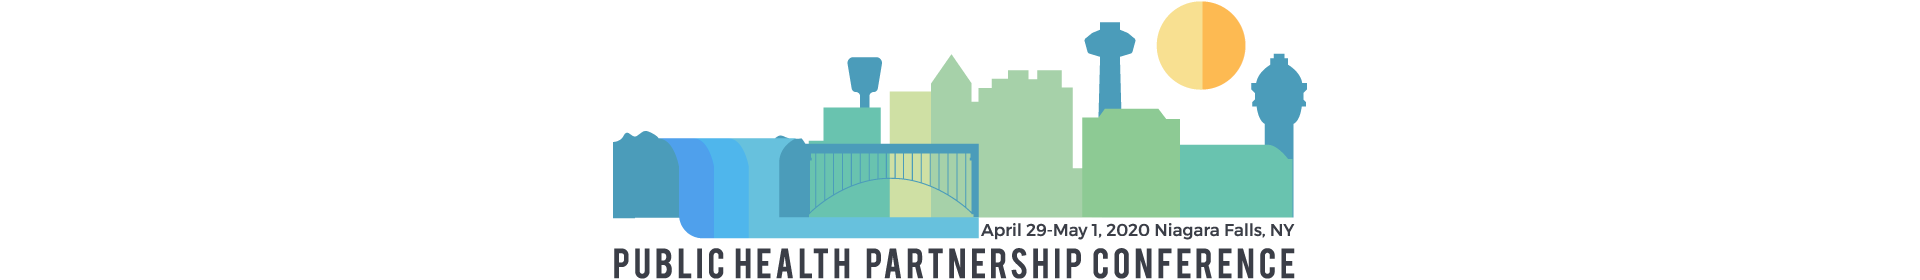 2020 Public Health Partnership Conference Event Banner